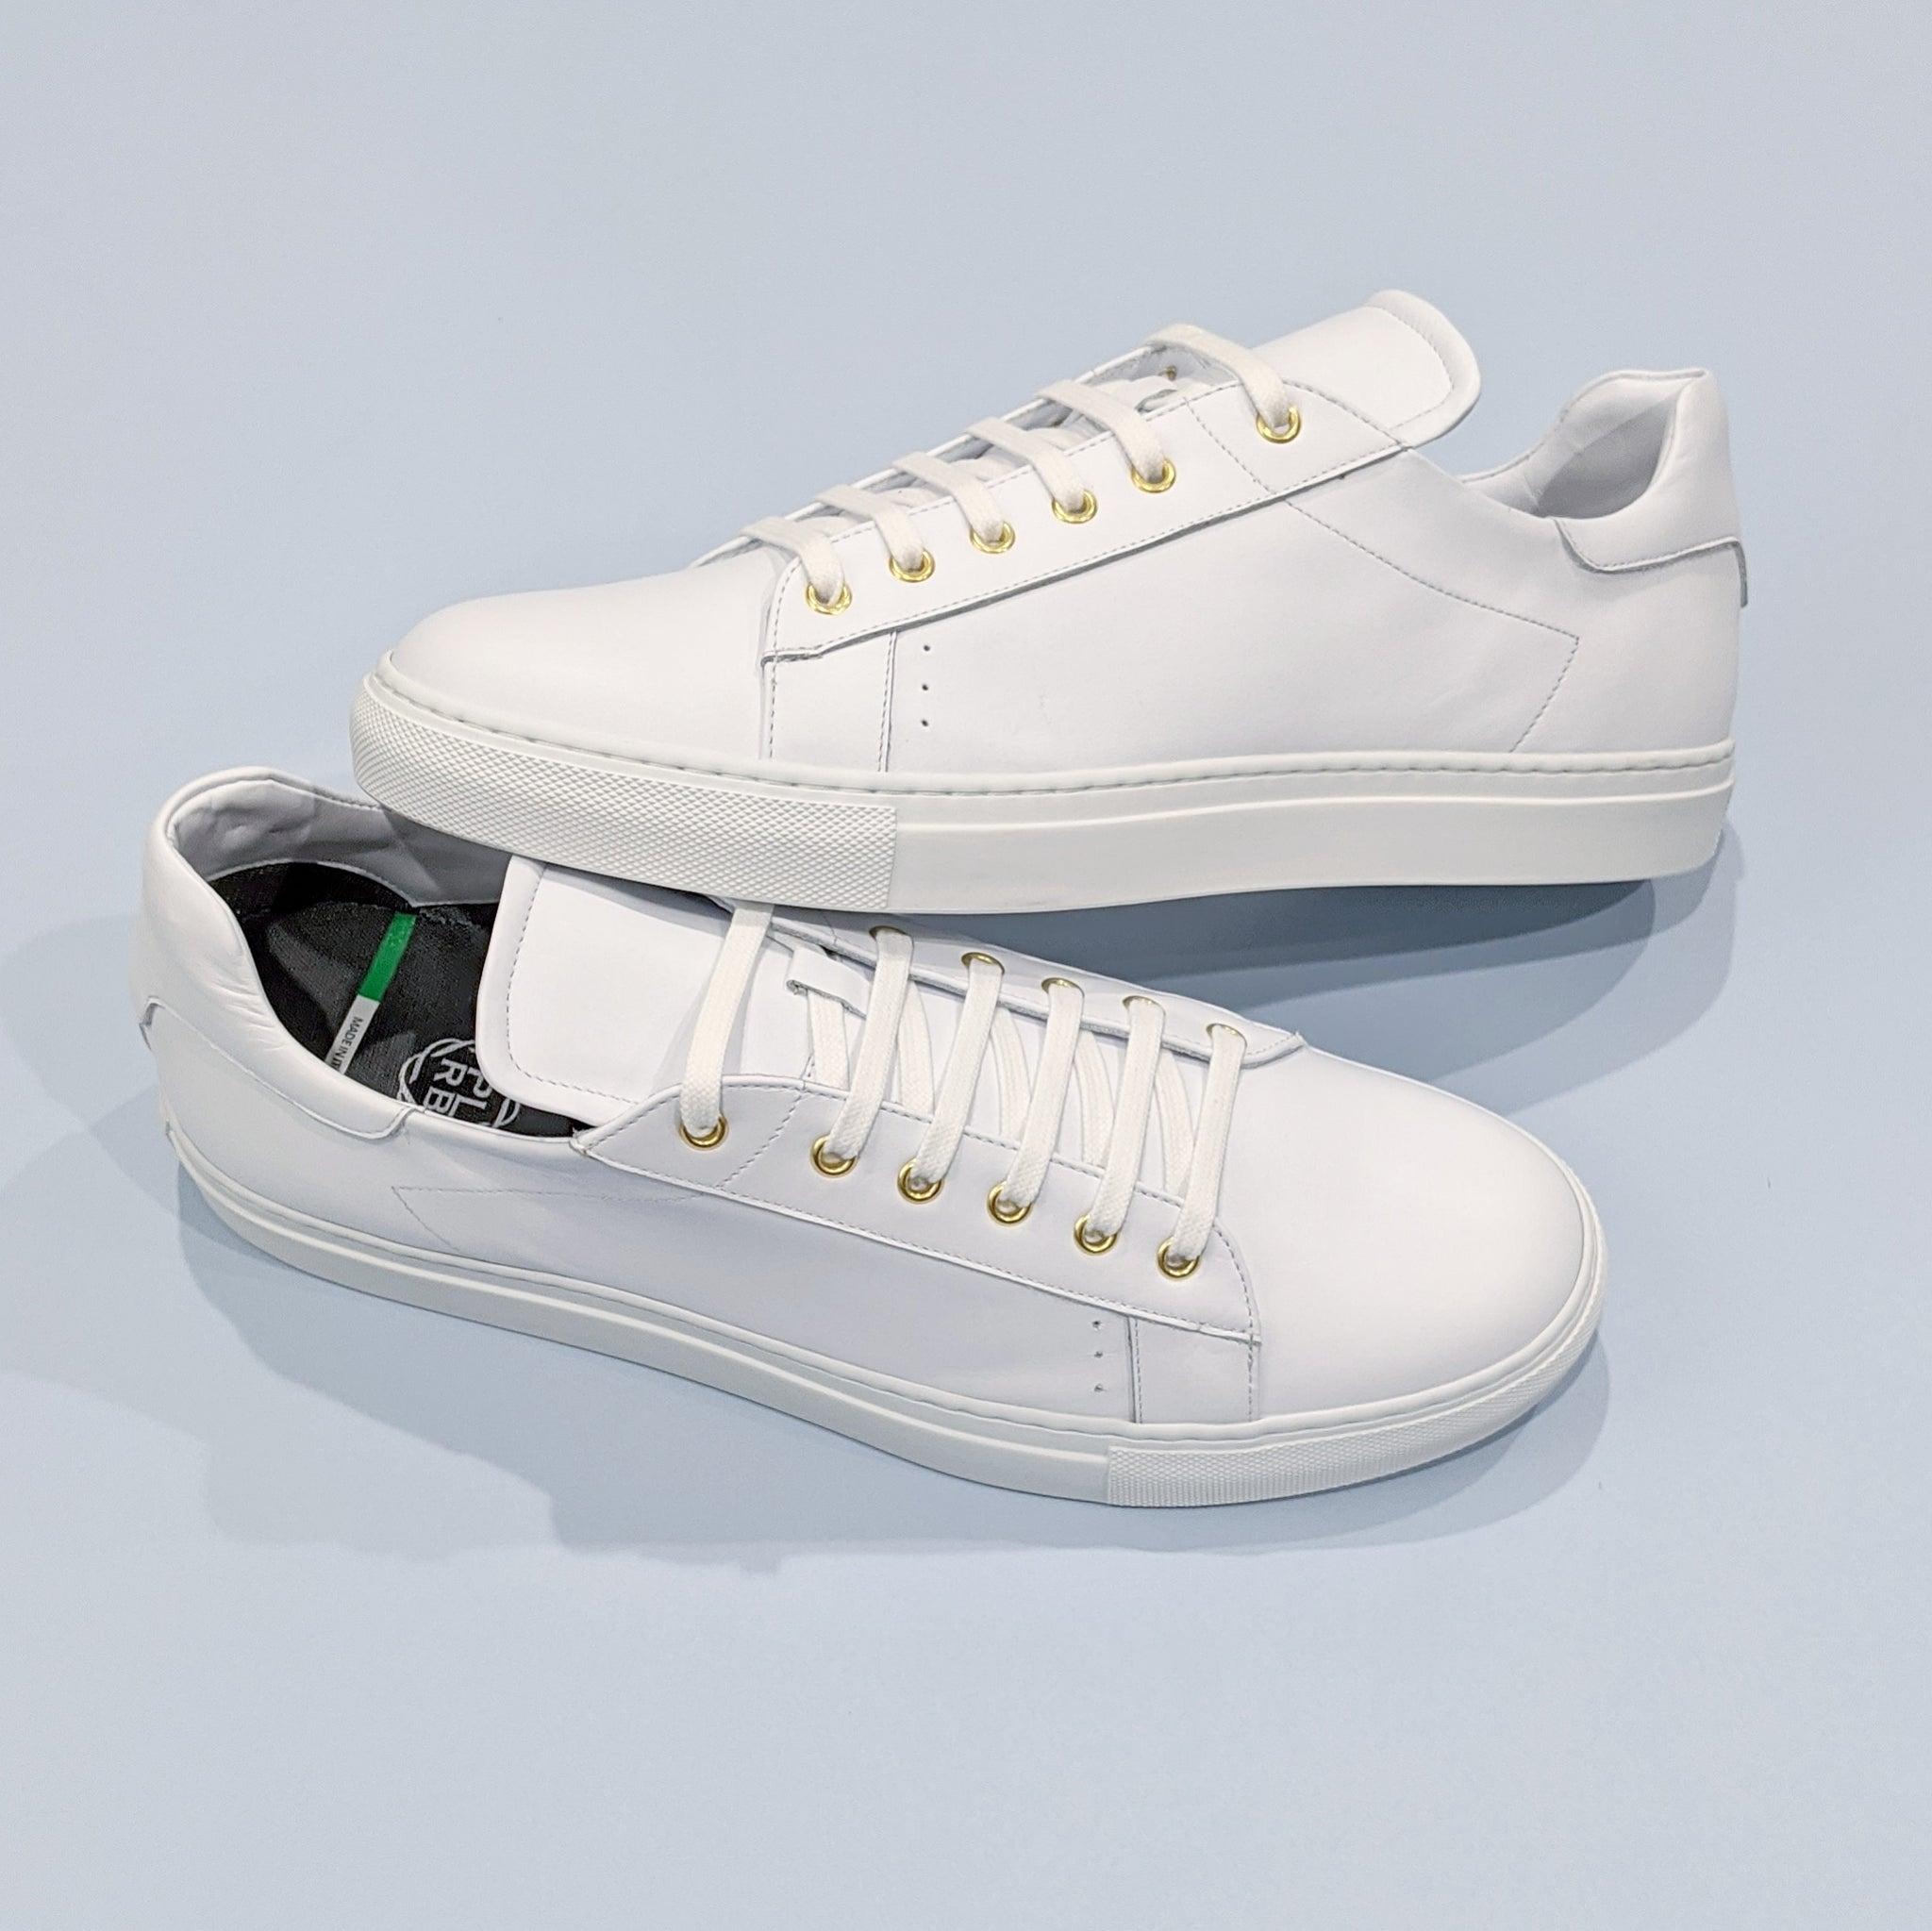 PLRB Lorenzo Sneakers in Milk White